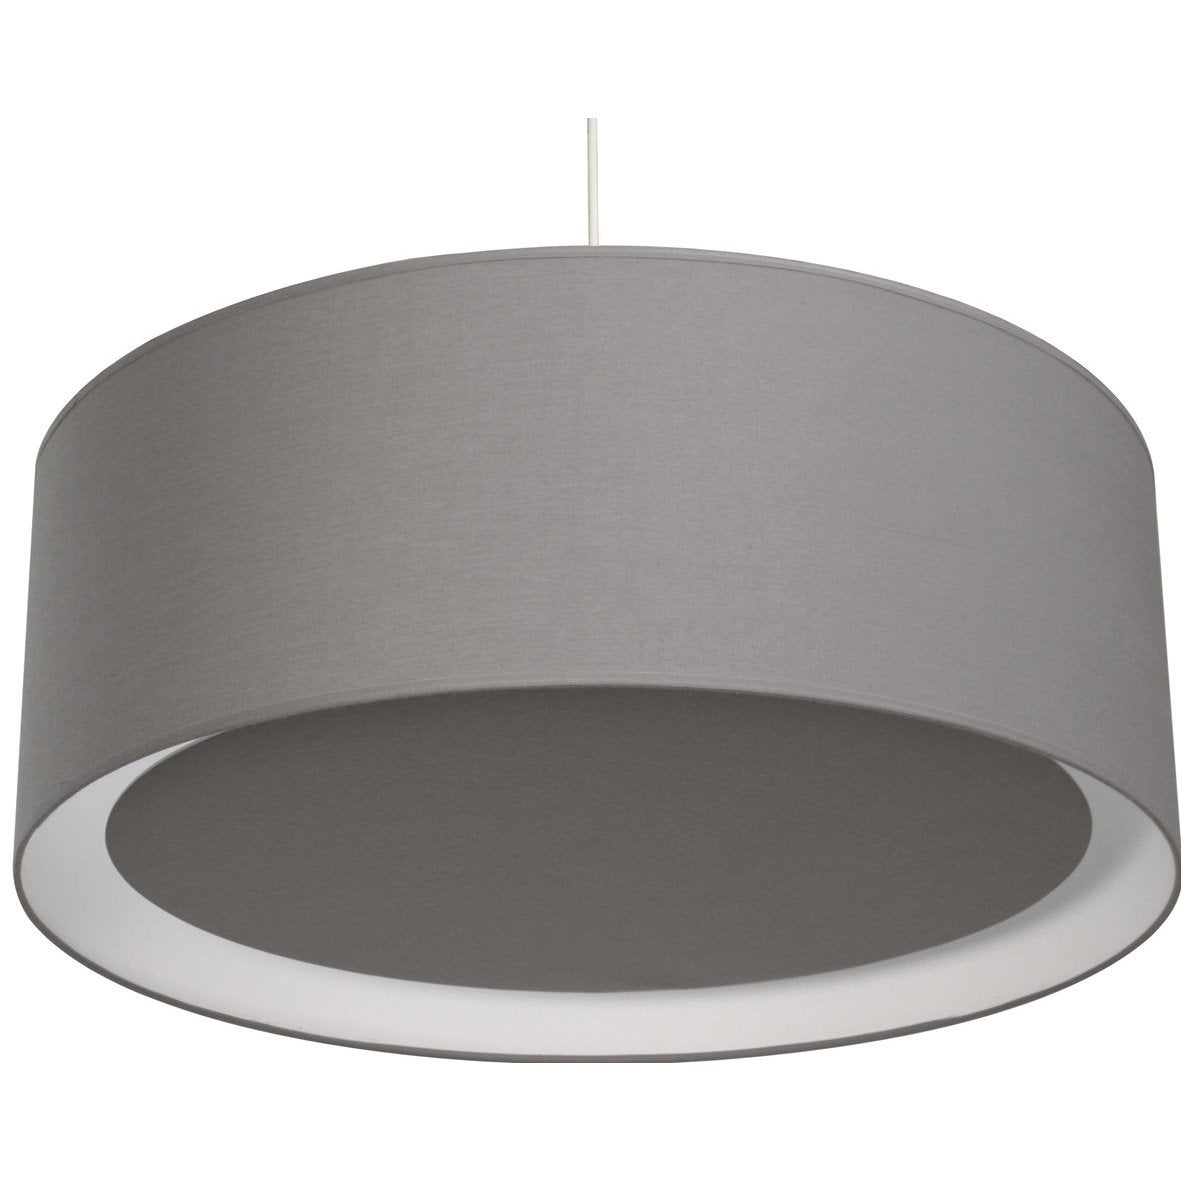 Suspension contemporain essentiel coton gris galet n 3 1 x 60 w inspire ler - Suspensions leroy merlin ...